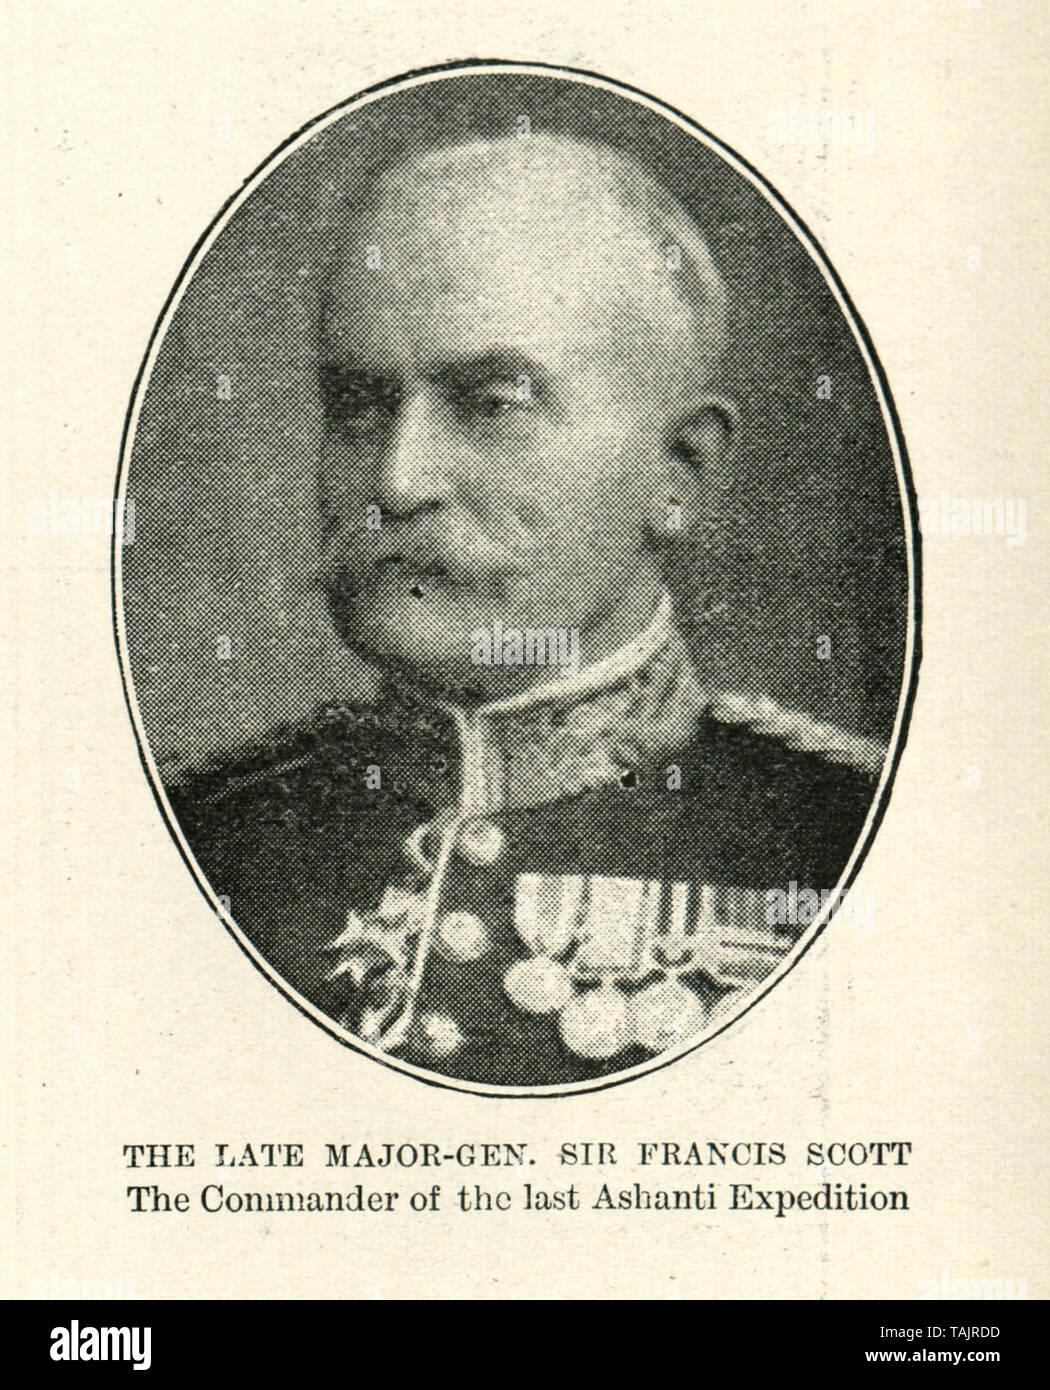 Major-General Sir Francis Cunningham Scott (1834 - 26 June 1902), was a British Army officer, who commanded the Fourth Anglo-Ashanti War 1895-96. Stock Photo